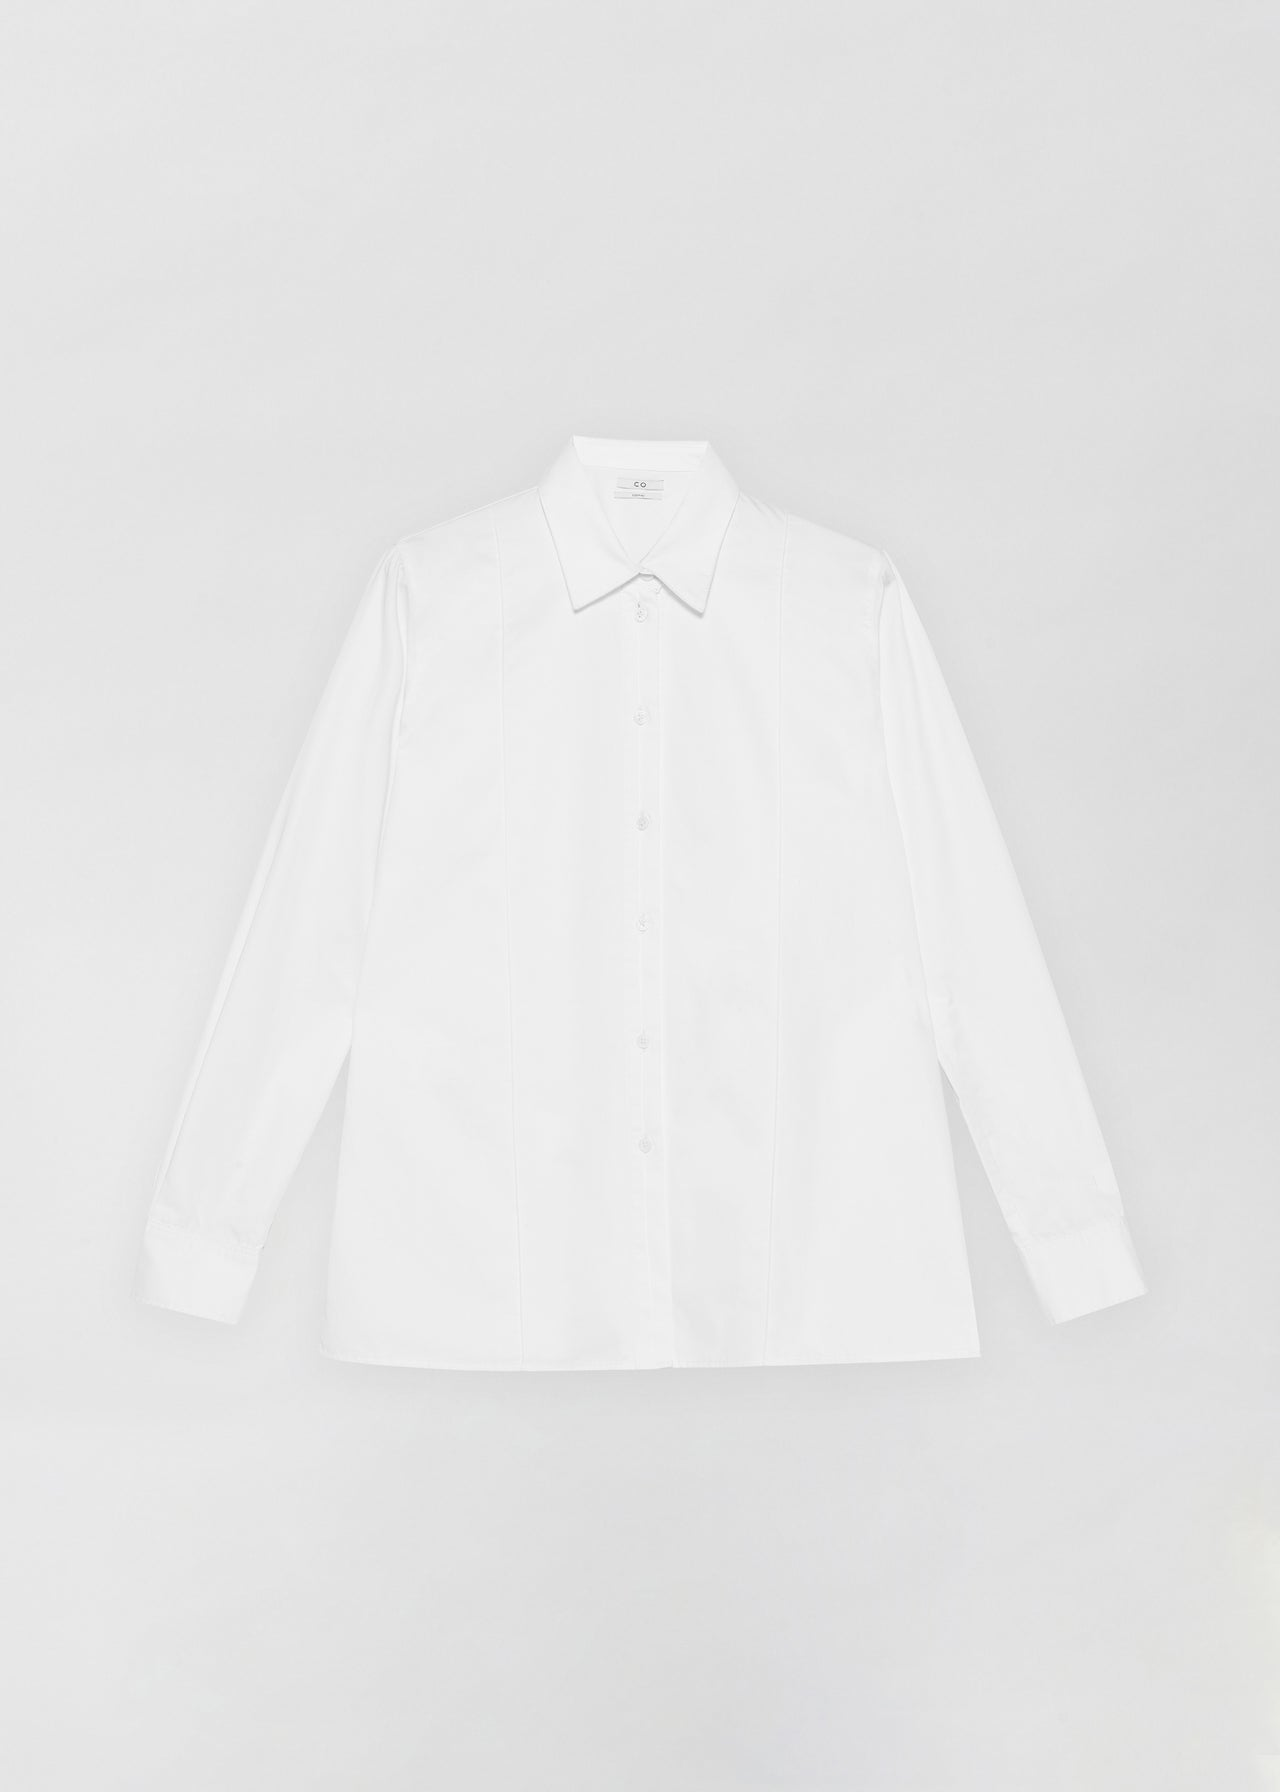 Tucked Placket Button Down Shirt - White